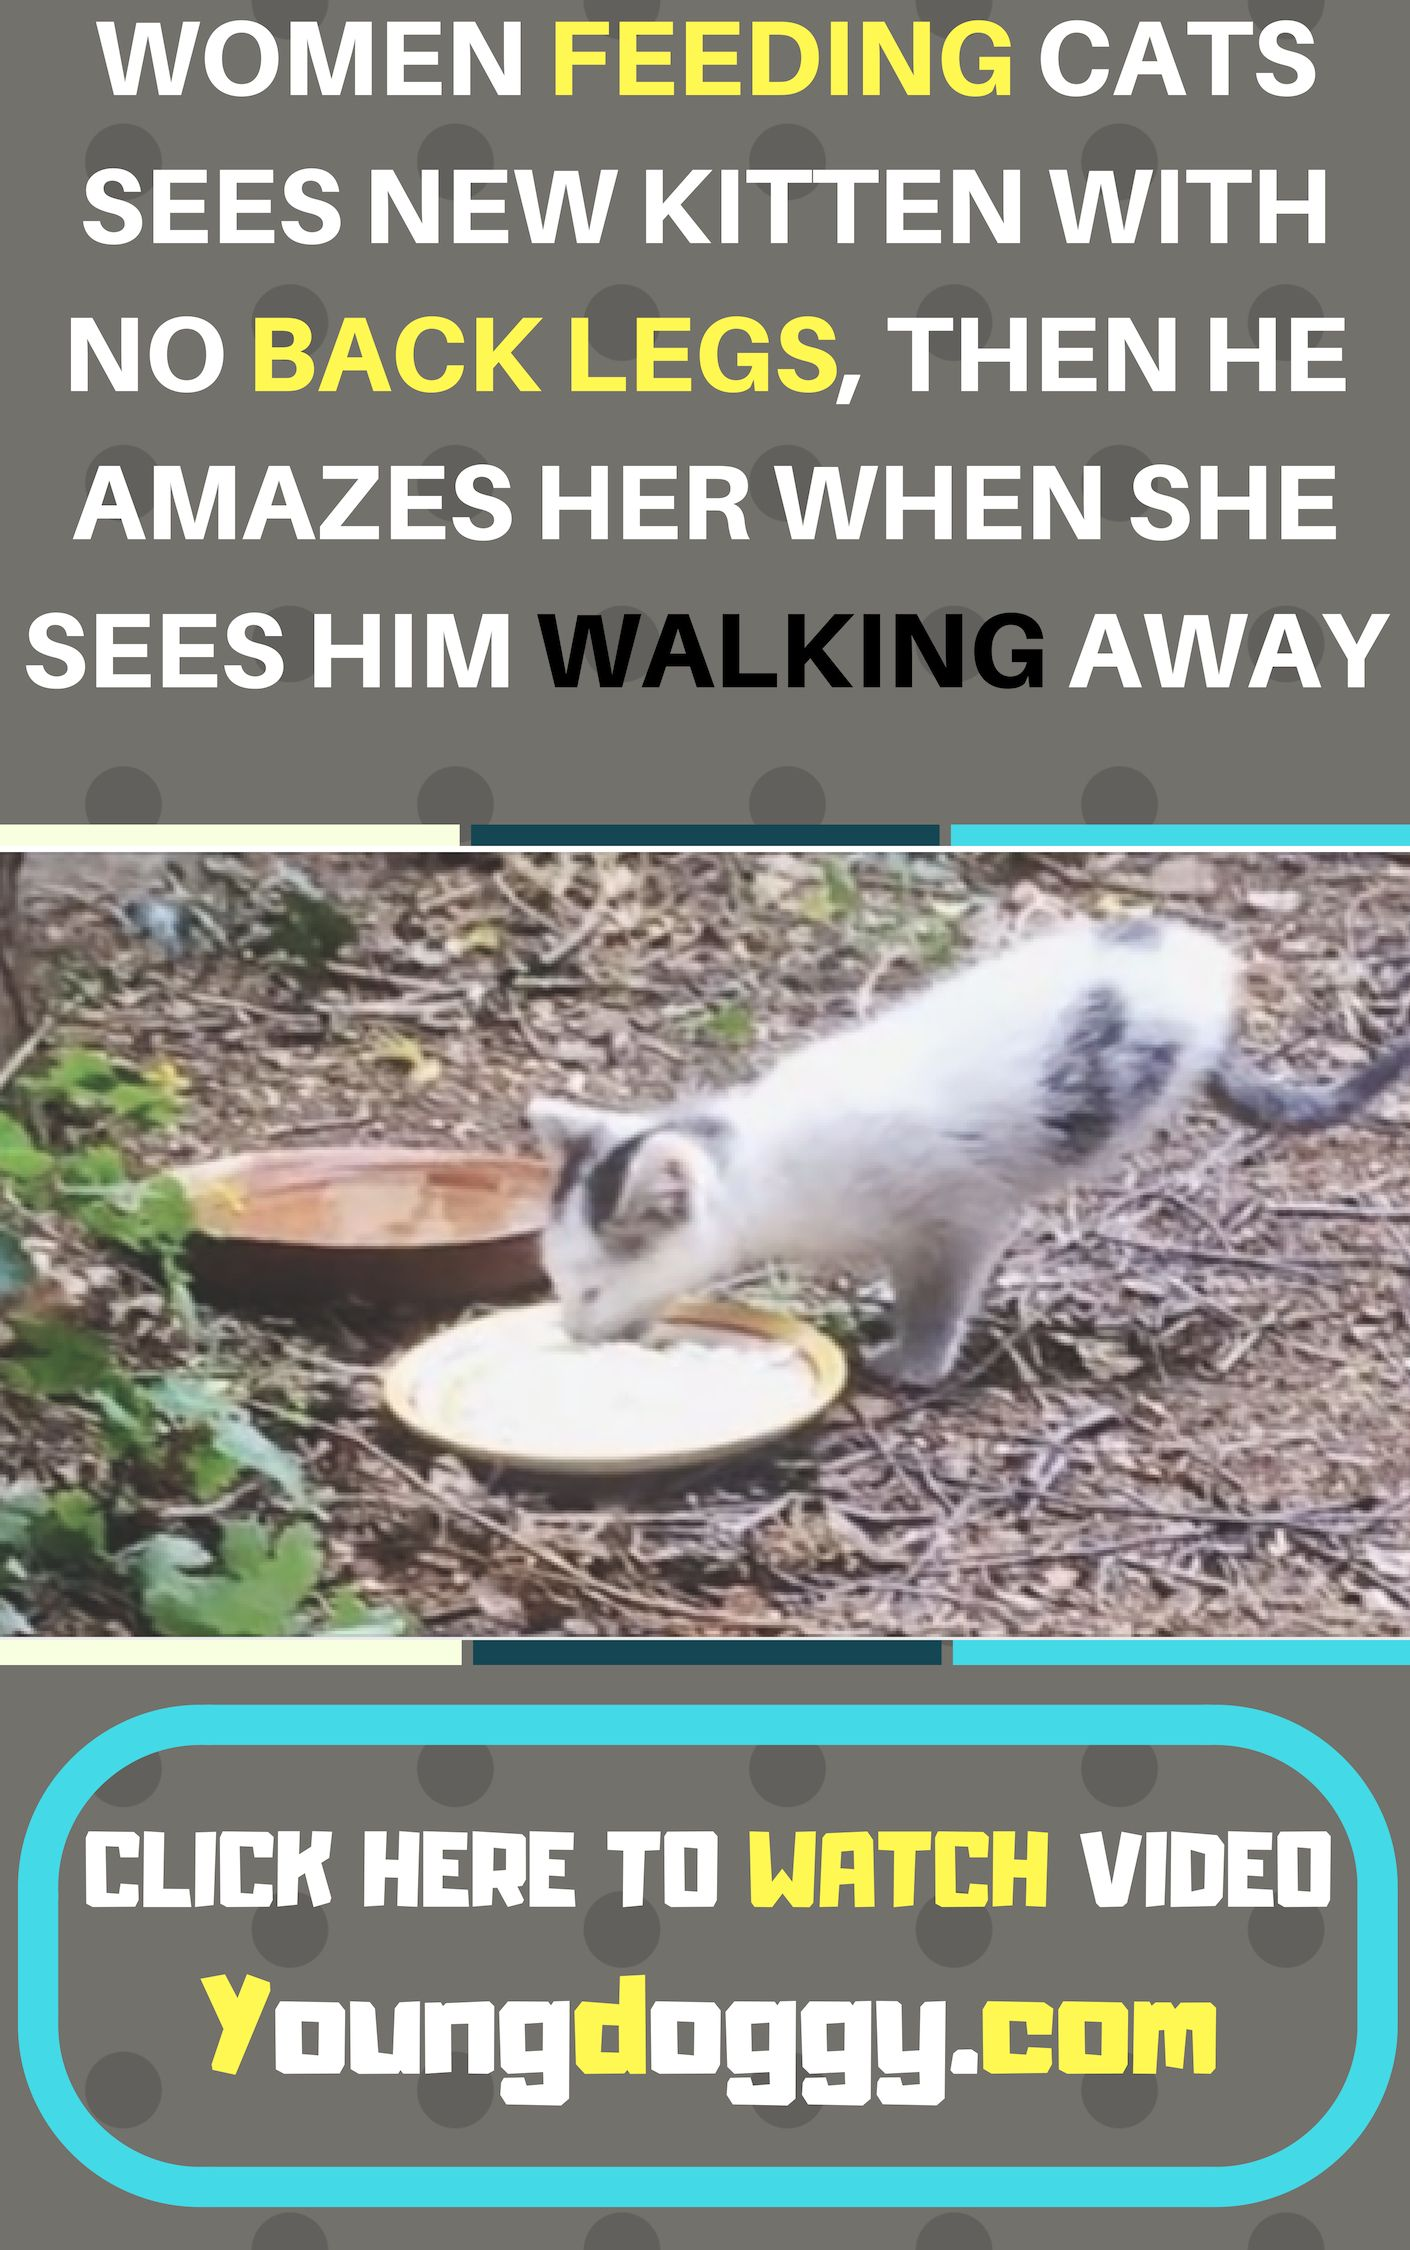 WOMEN FEEDING CATS SEES NEW KITTEN WITH NO BACK LEGS, THEN HE AMAZES HER WHEN SHE SEES HIM WALKING AWAY #animalrescue